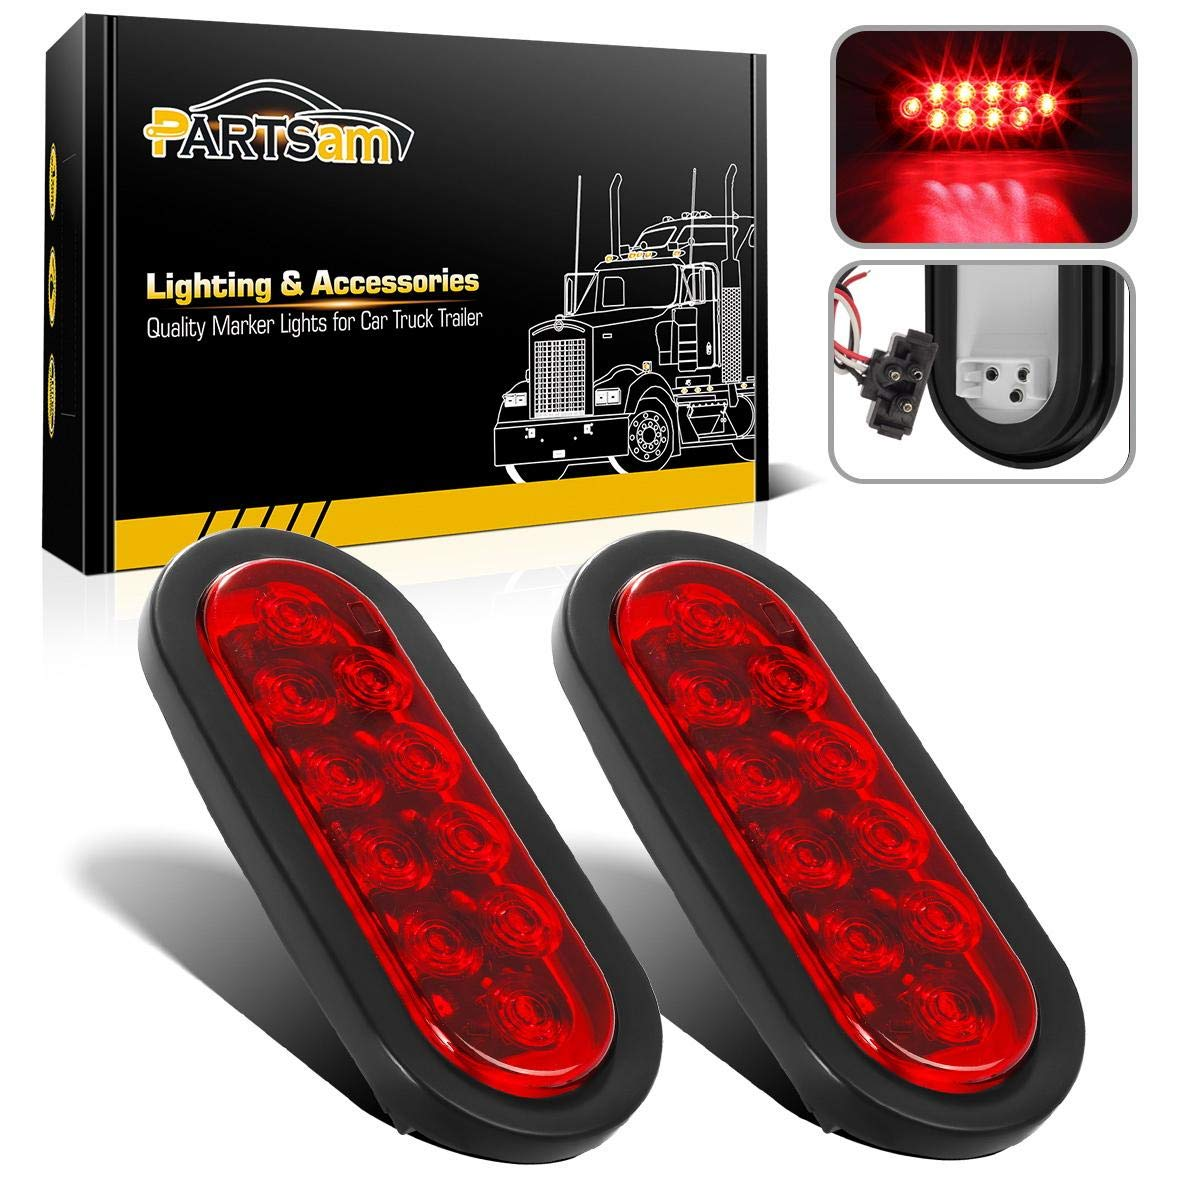 Partsam 2 Pcs 6 Inch Oval Trailer Tail Lights Red 10 LED, 6'' Red Oval Sealed LED Turn Signal and Parking Light Kit with Light, Grommet and Plug for Truck Trailer (Turn, Stop, and Tail Light)